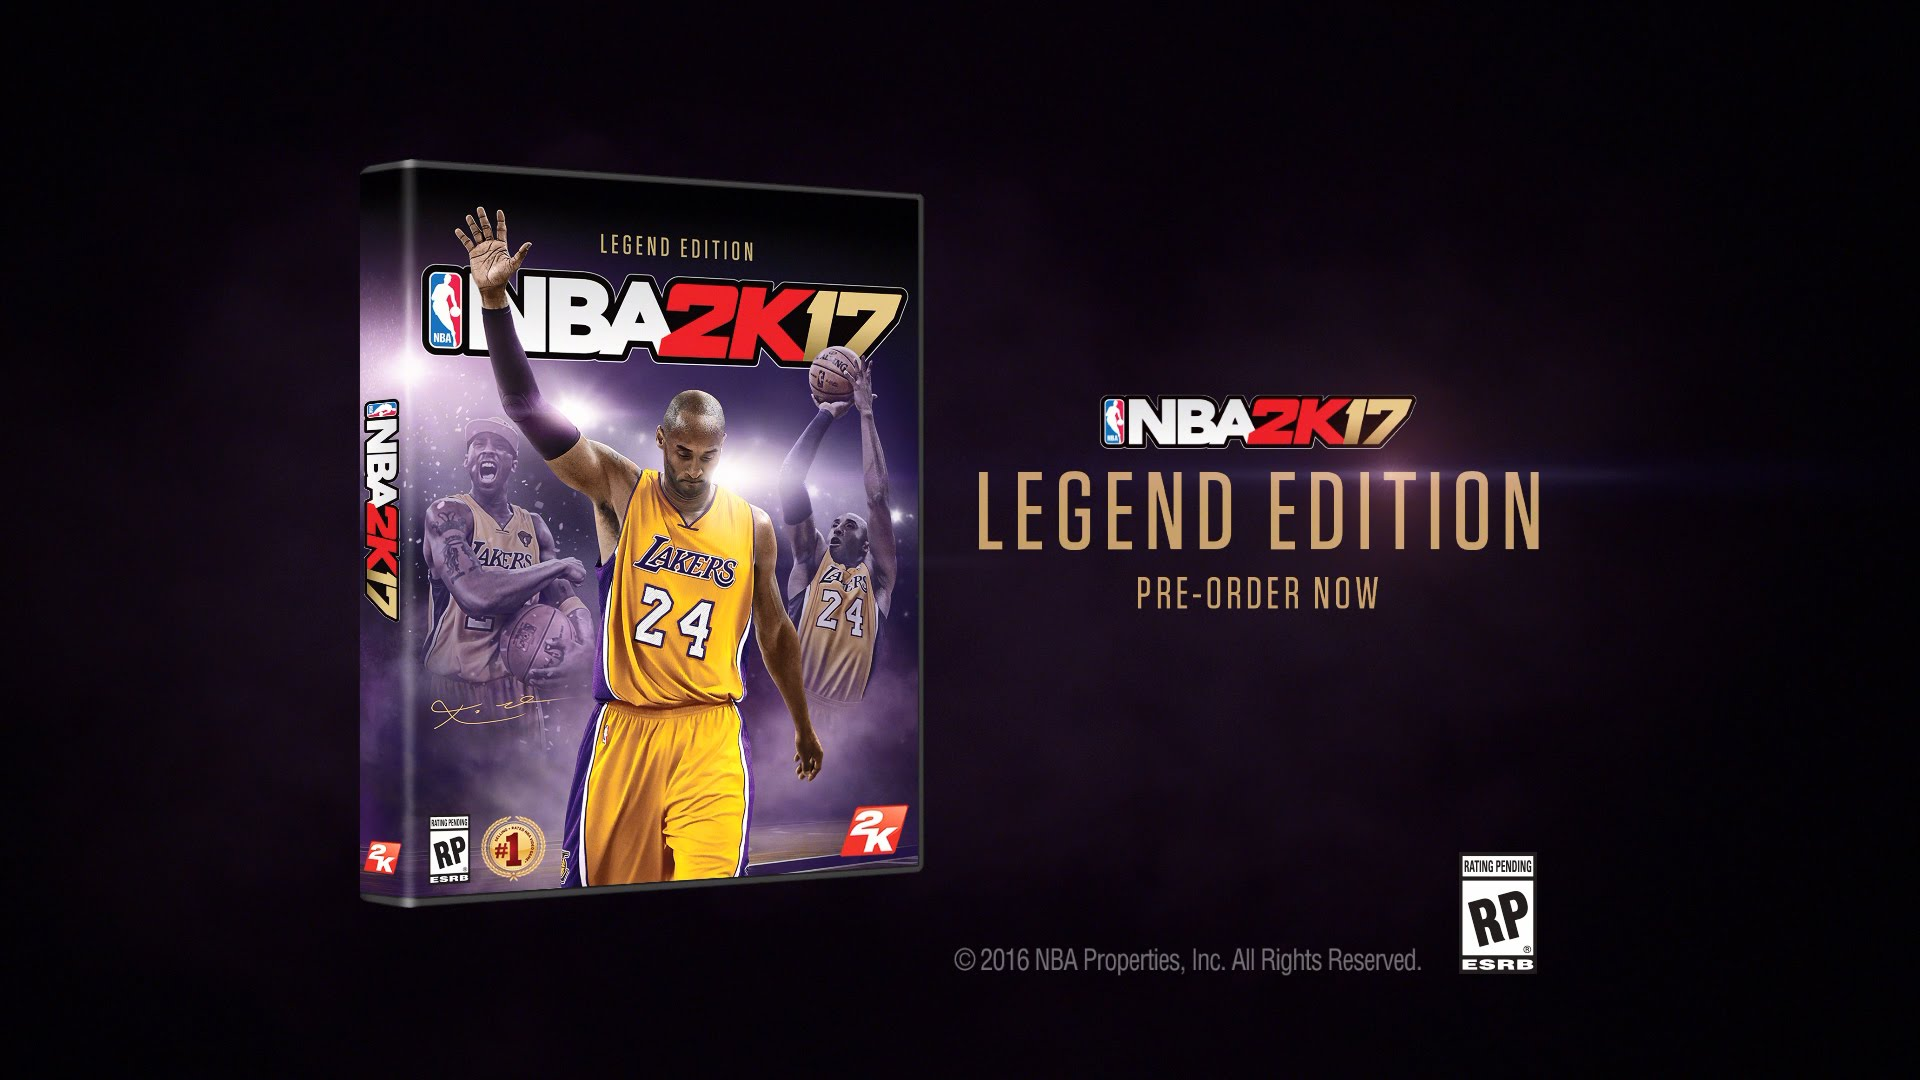 Kobe Bryant to appear on the cover of NBA 2K17